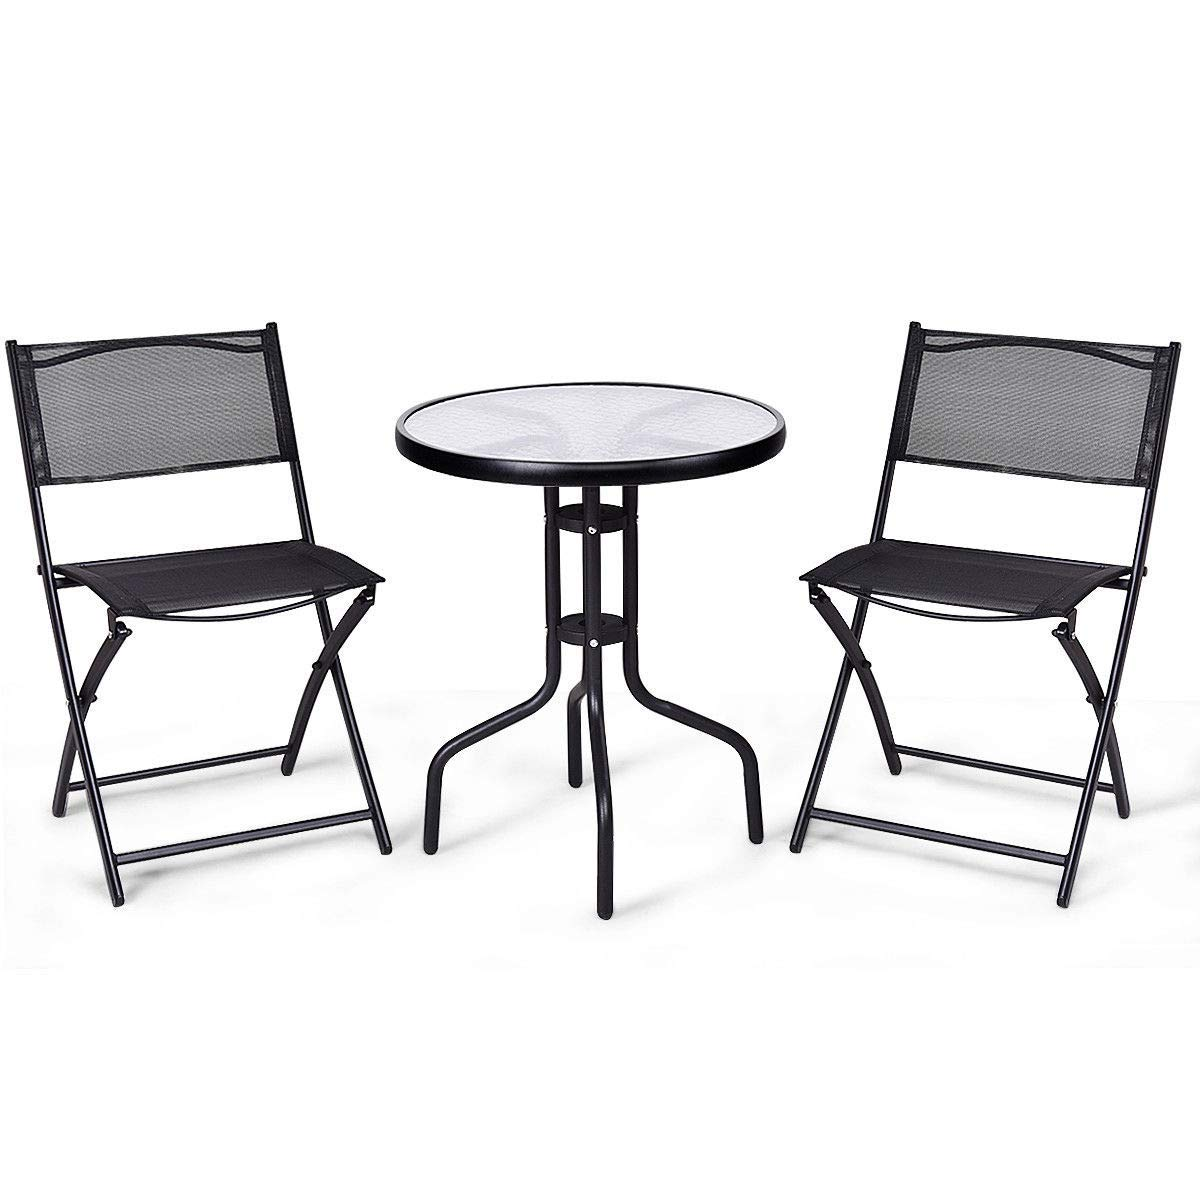 KCHEX>3 Pcs Bistro Set Garden Backyard Table Folding Chairs Outdoor Patio Furniture>This is Our 3-Piece Bistro Set which add a Fashion Style to Your Garden or Patio